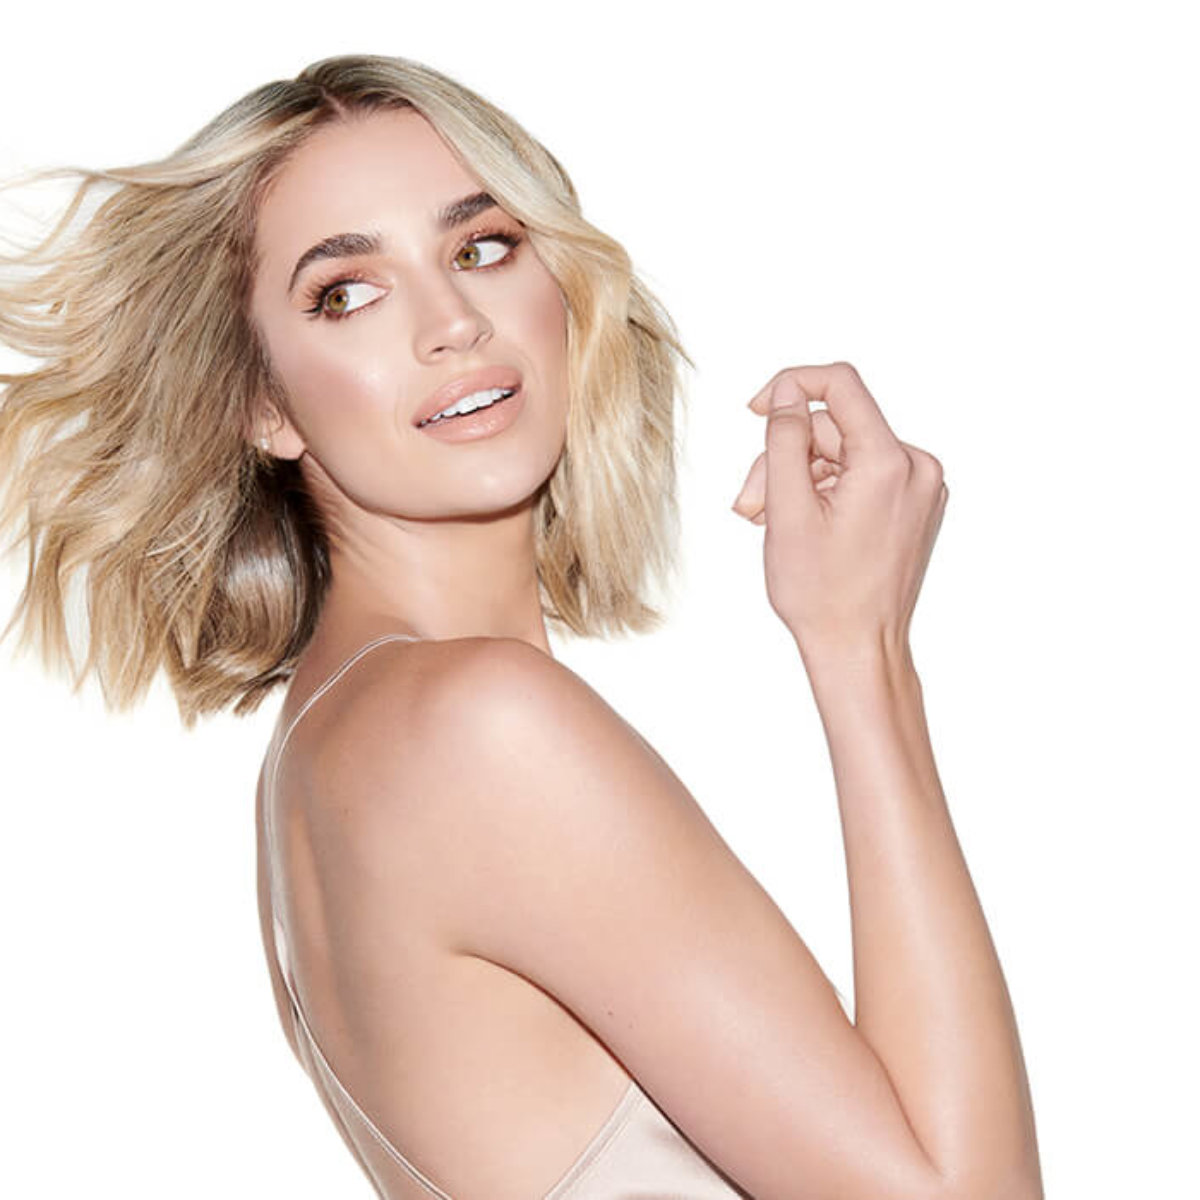 Model with bright blonde bob hair